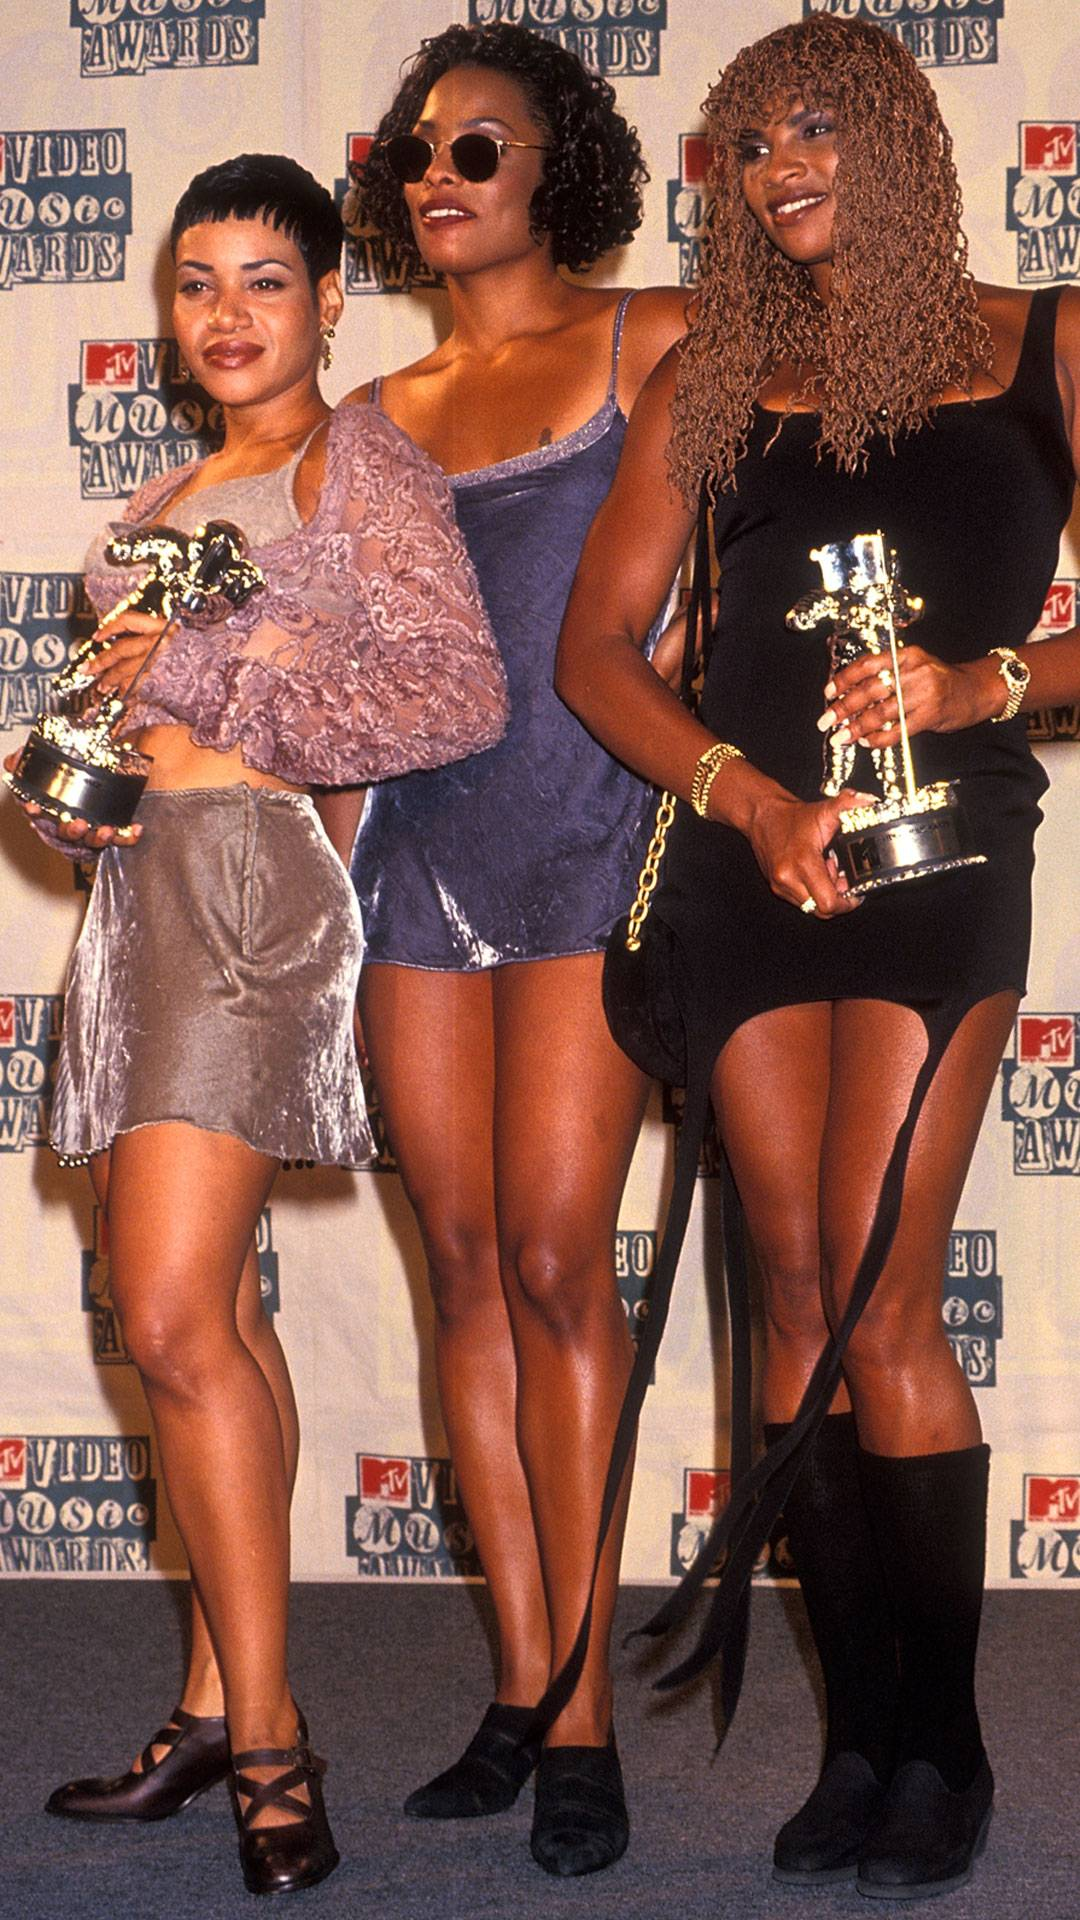 MTV Video Music Awards 2021   Are These MTV VMA 90s Looks Making a Comeback?   Salt-N-Pepa and DJ Spinderella   1080x1920